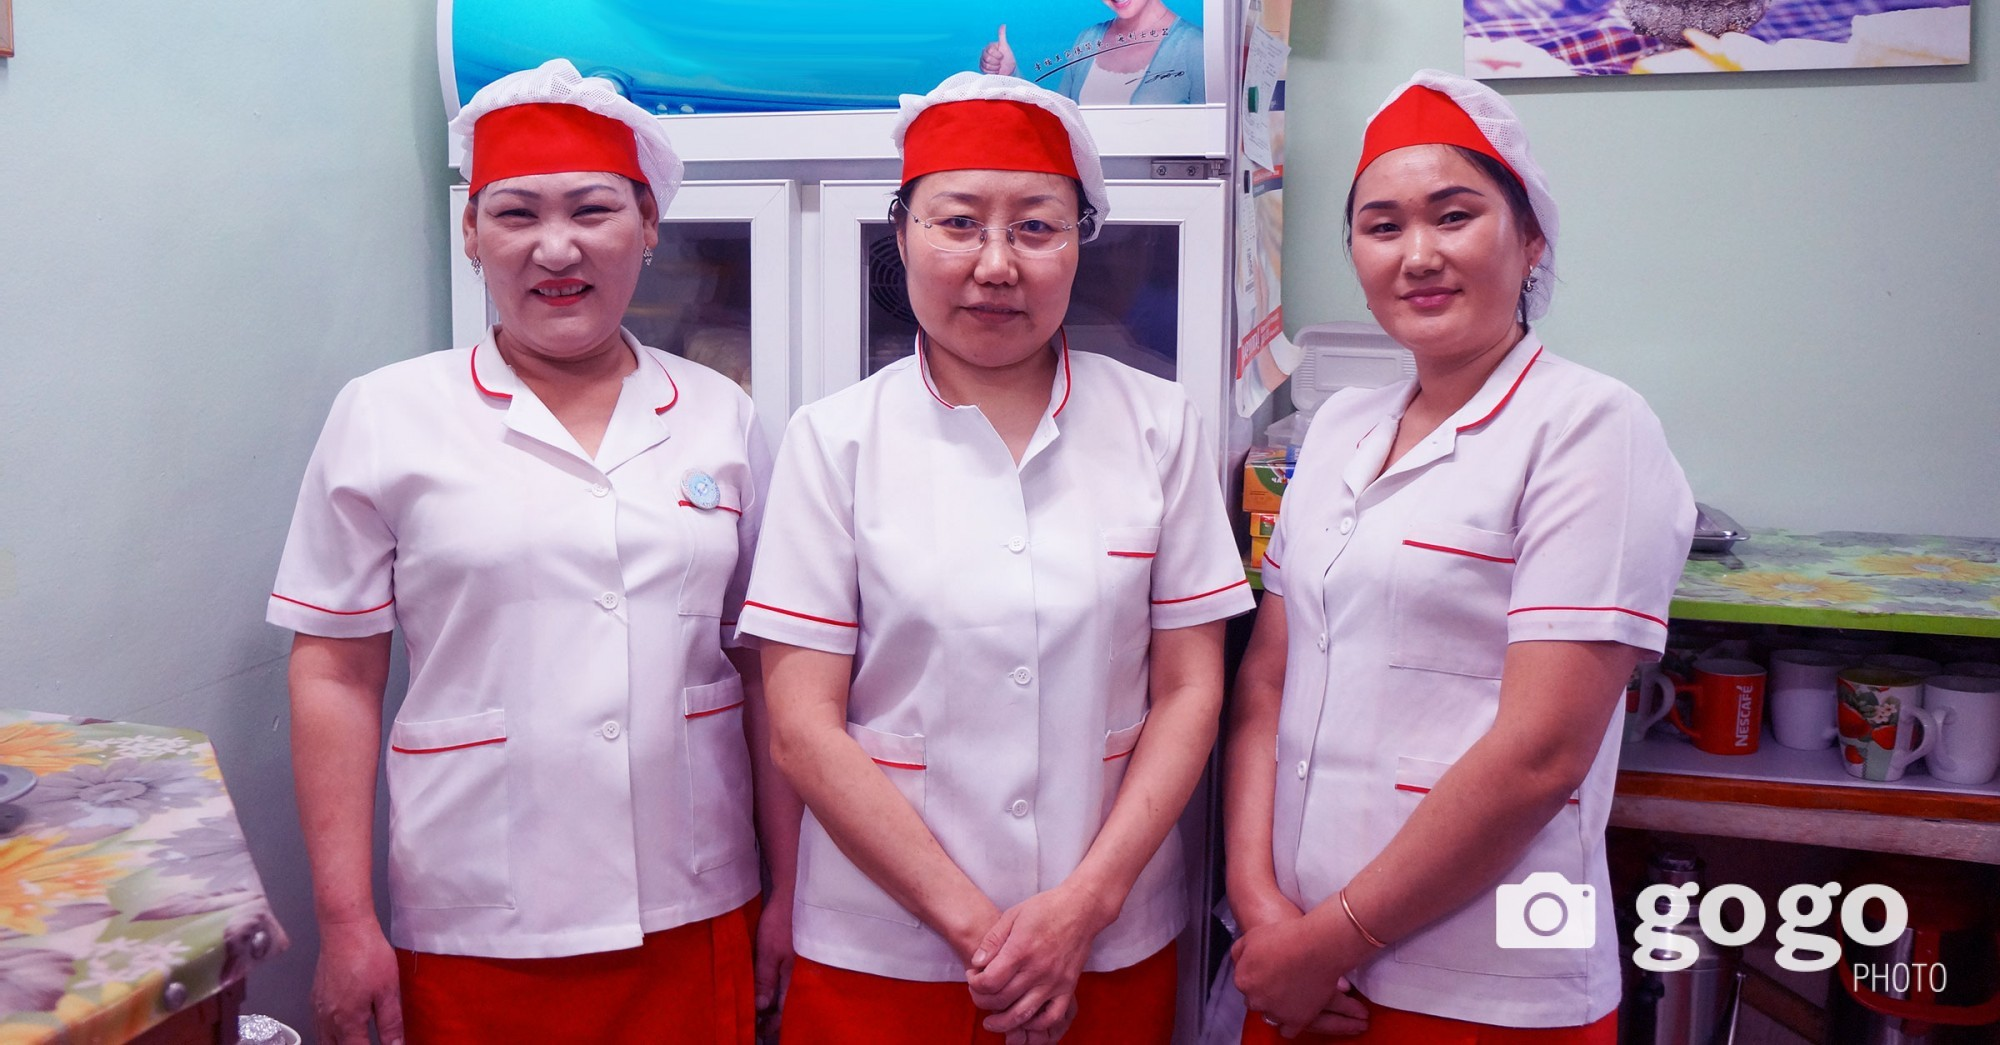 Ts.Altantsetseg, T.Tsolmon and Z.Narantuya work at  Maral restaurant. They want all women in Mongolia to be happy and good.